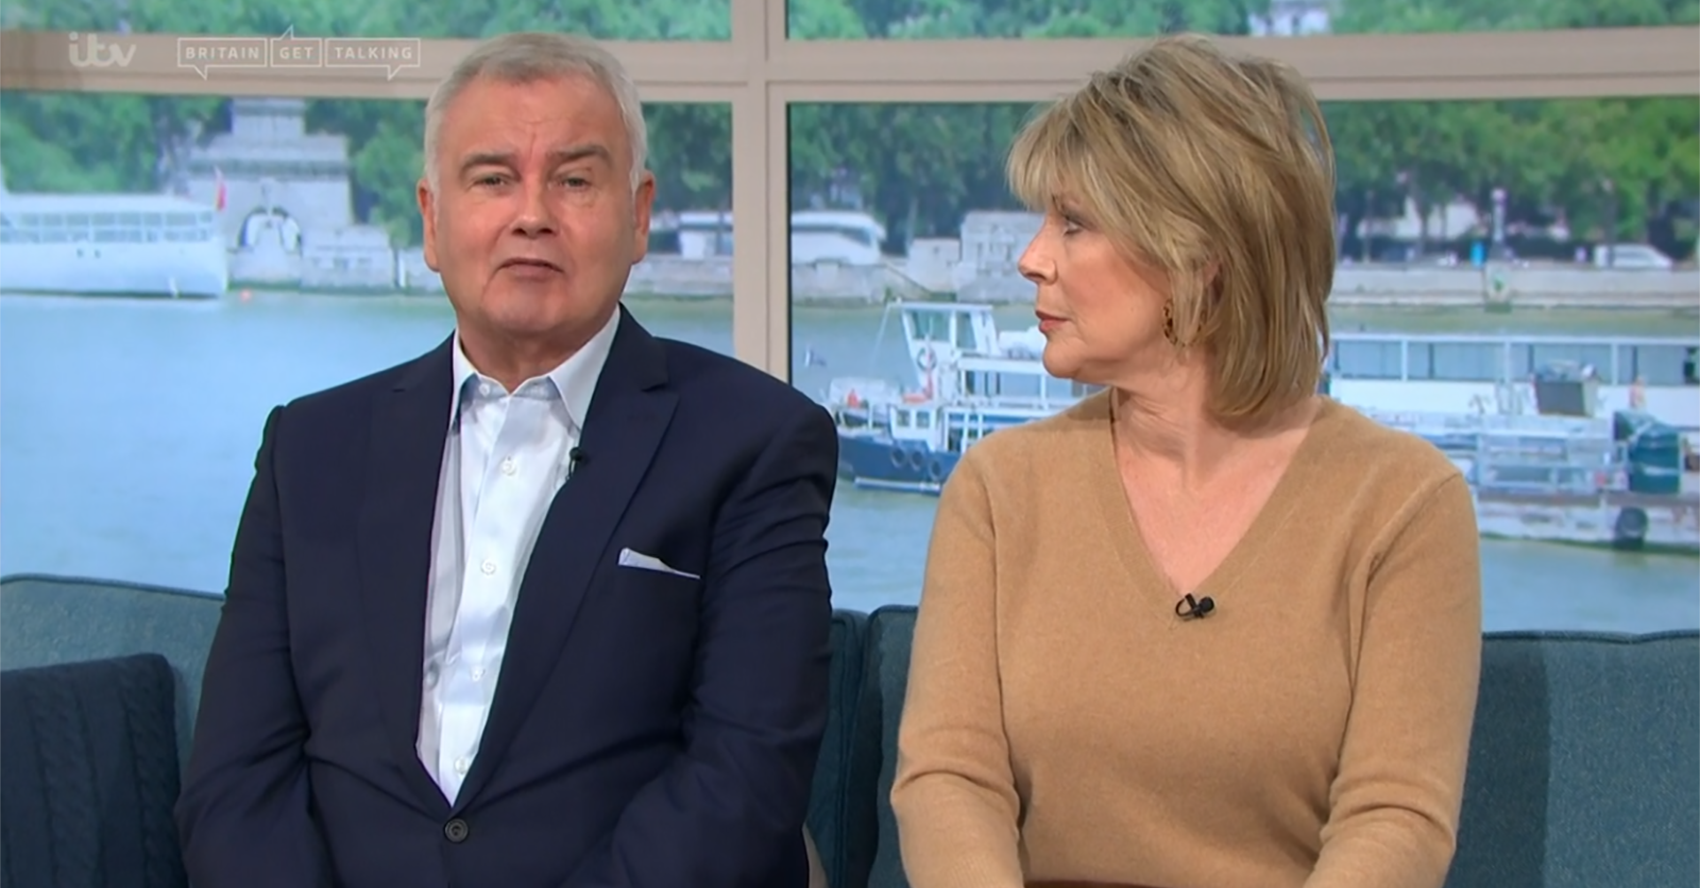 Ofcom issues guidance to ITV after Eamonn Holmes' coronavirus comments on This Morning